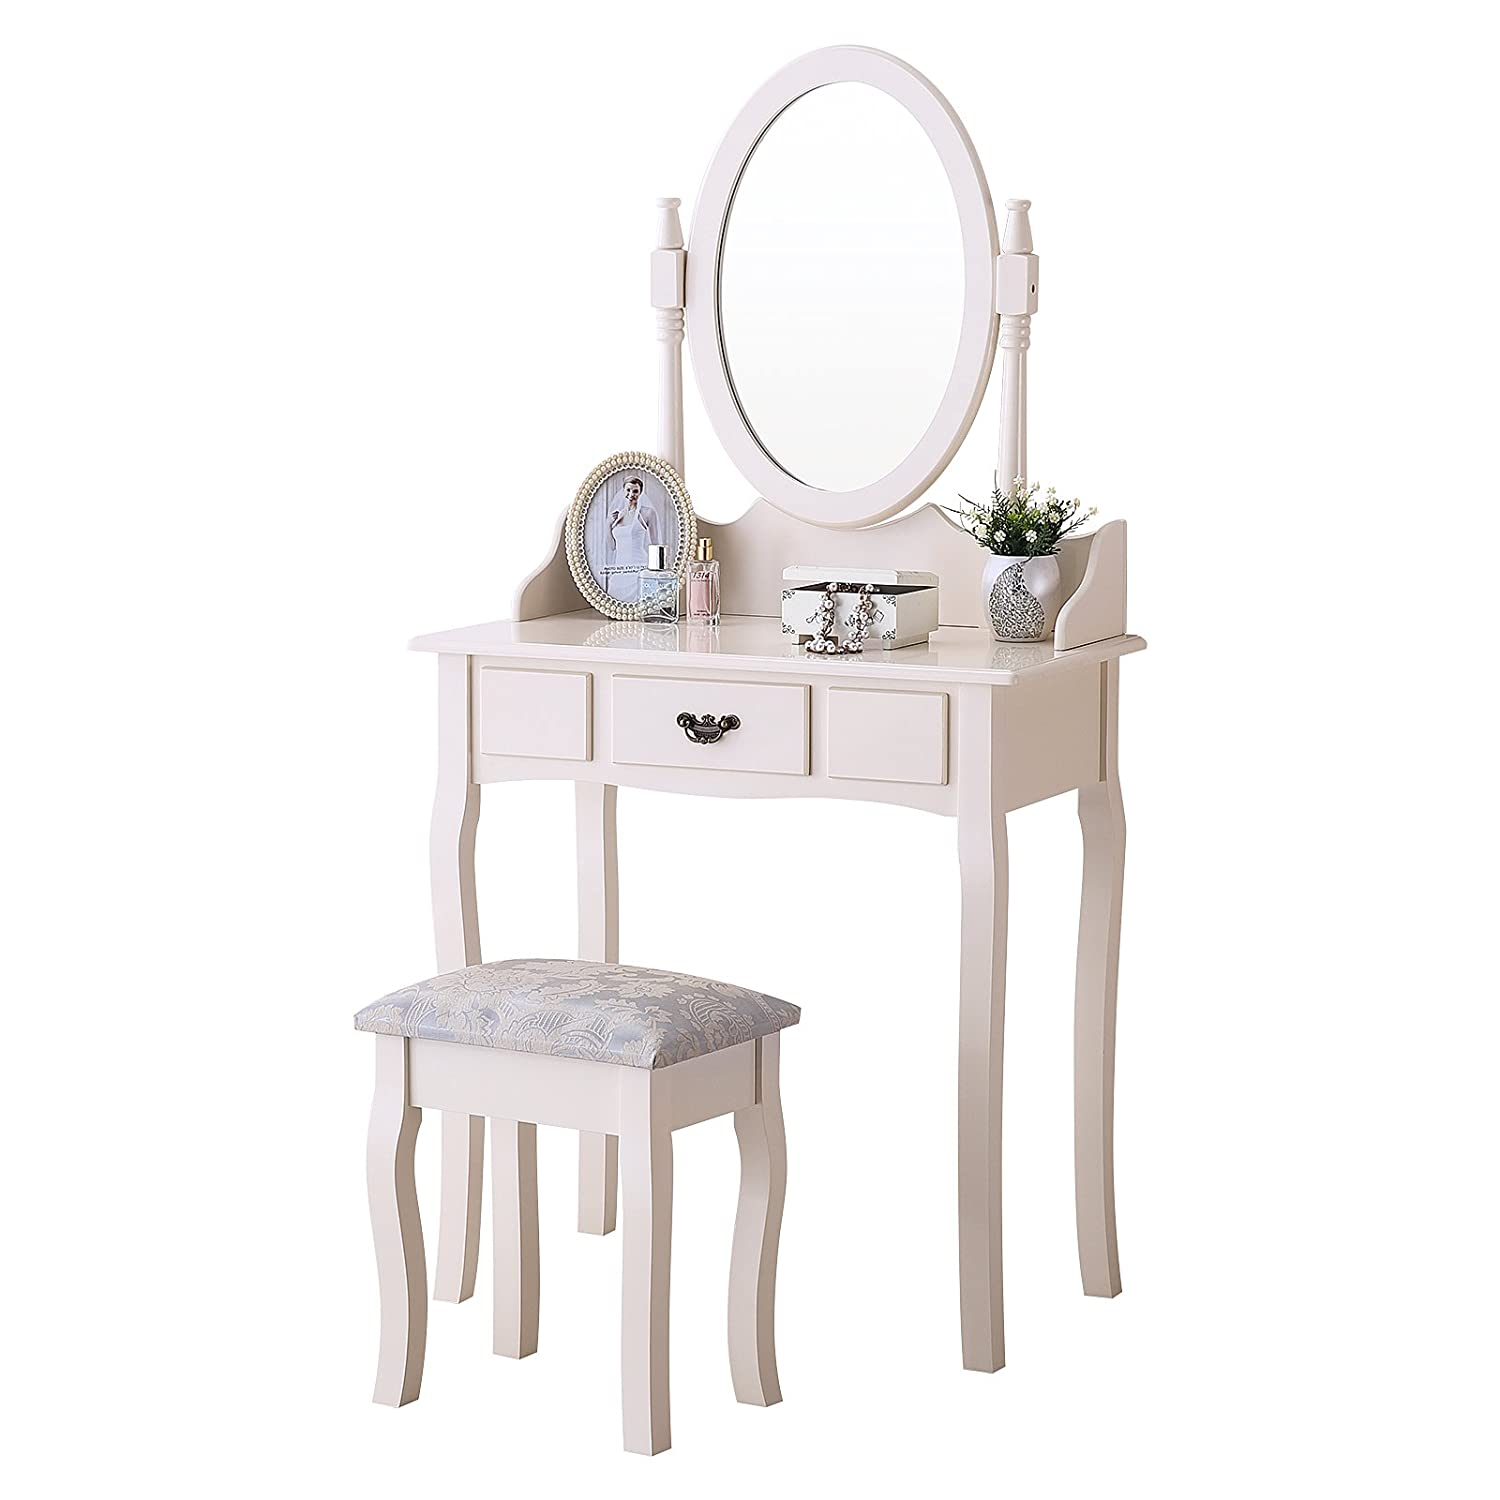 Amazon com mecor vanity makeup table set 4 strawers dressing table with stool ivory kitchen dining